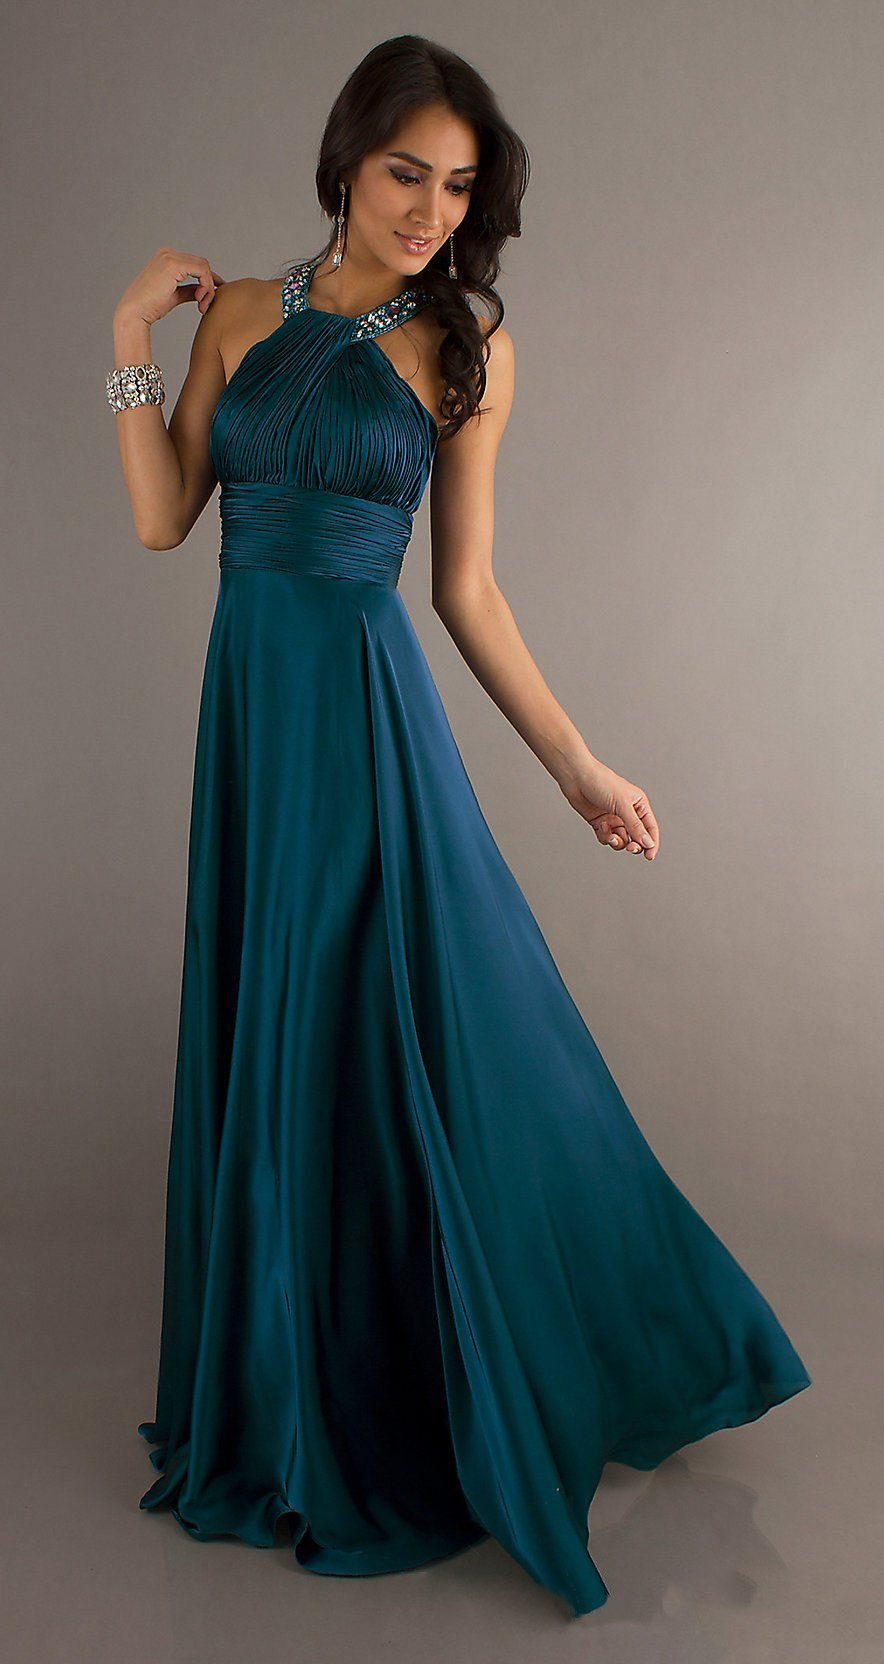 Classic High Neck Halter Prom Dress Burgundy Long Silky Satin (7 Colors Available)